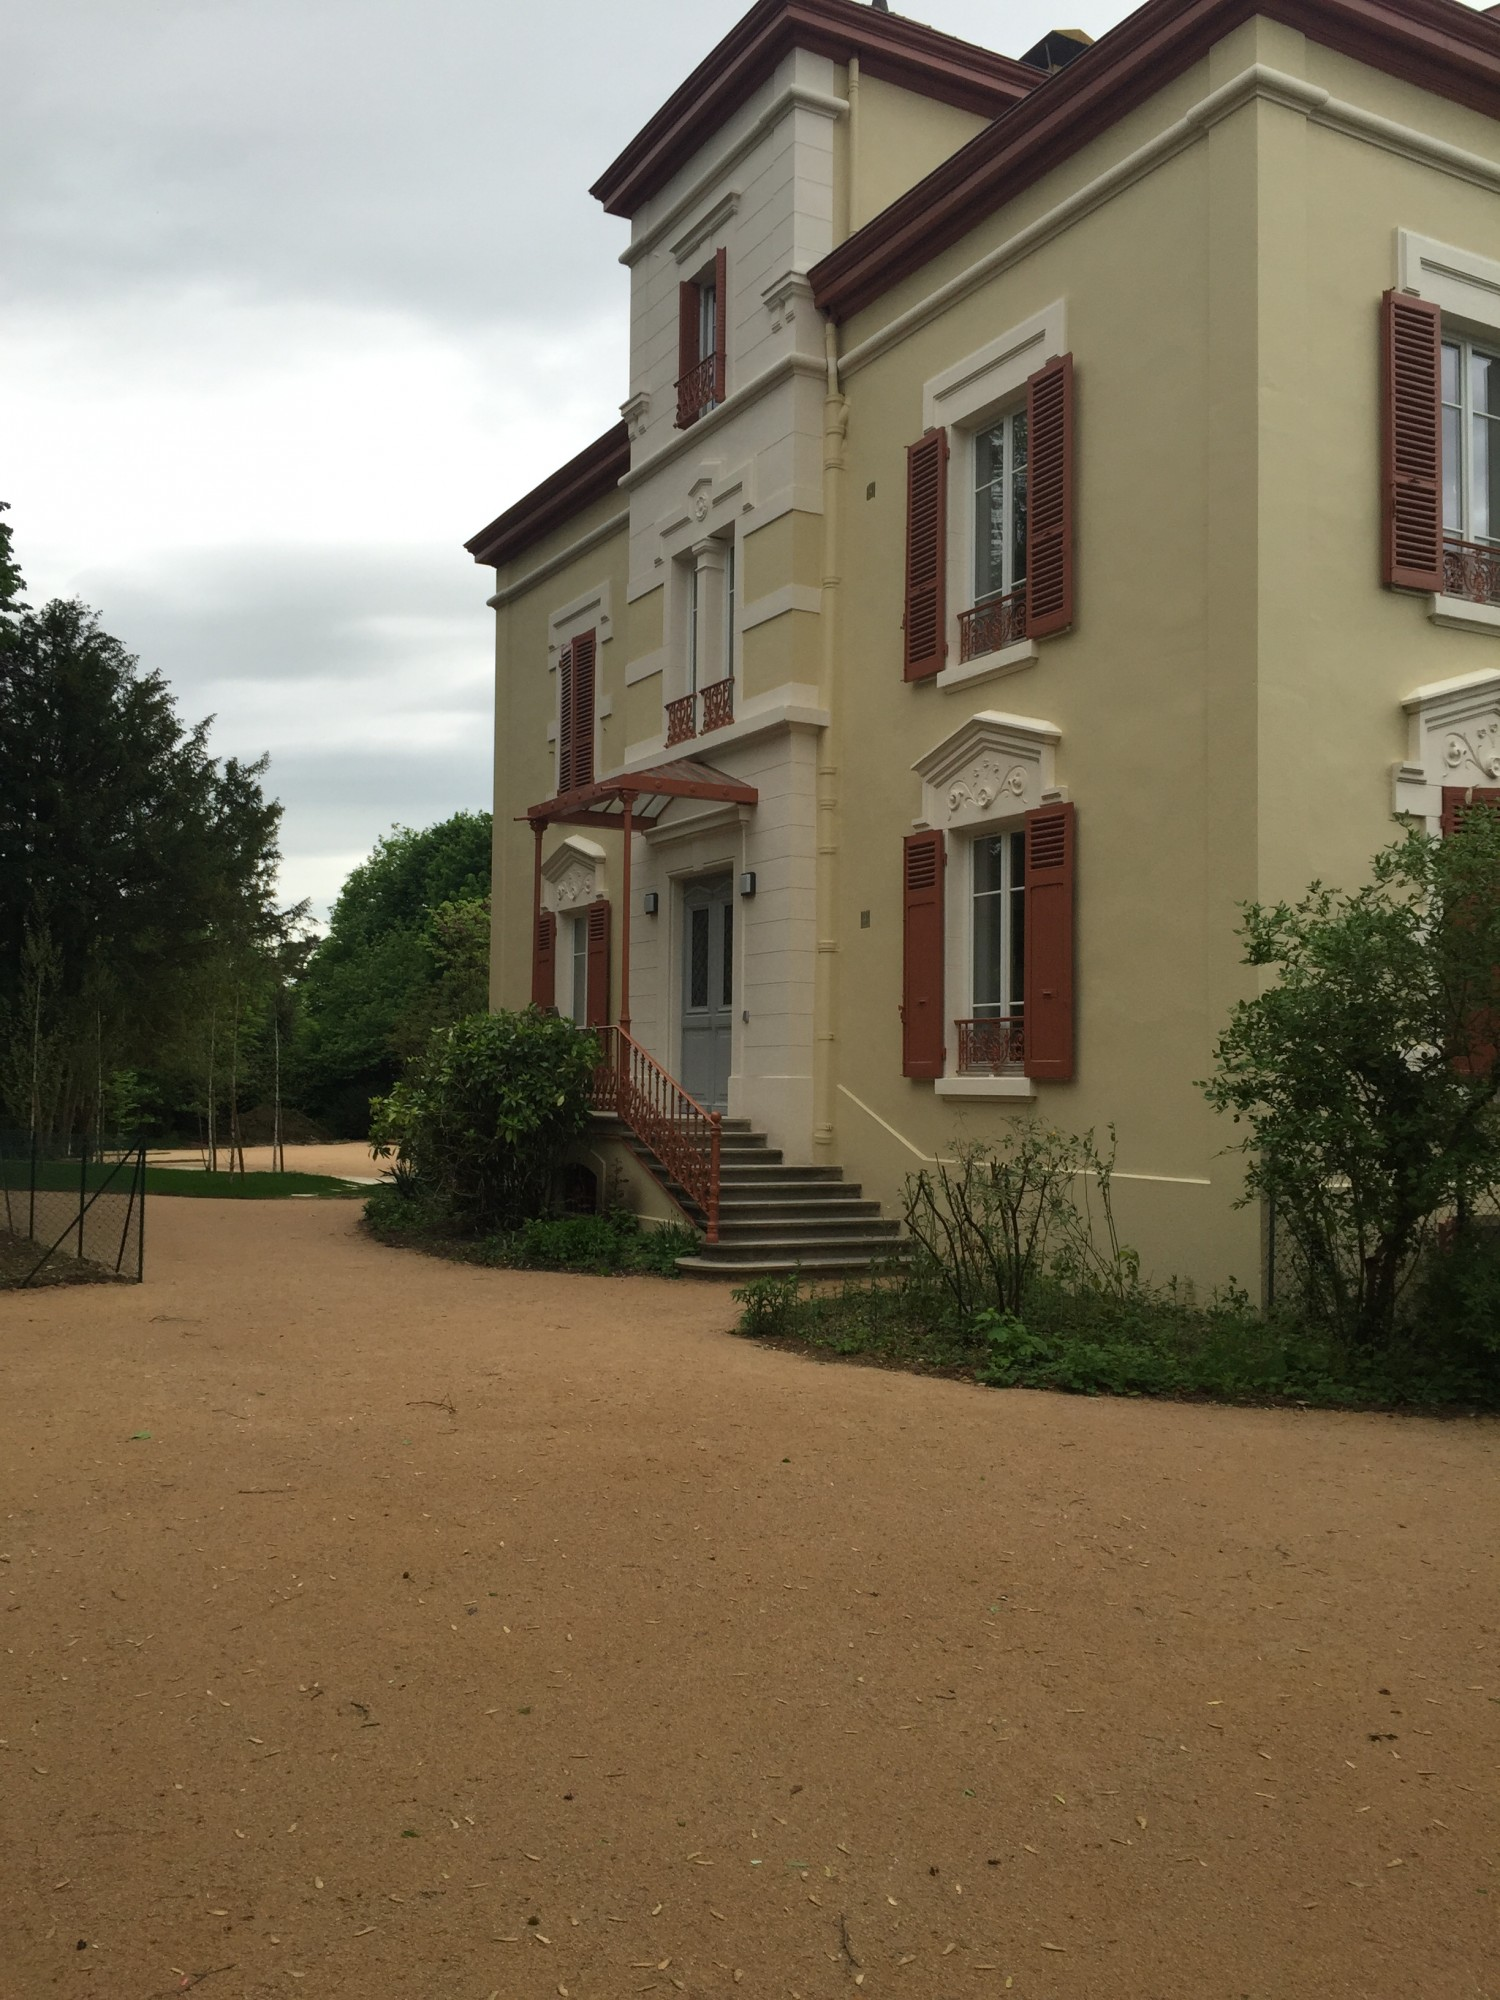 Location appartement meubl t2 pi ces f2 pi ces ecully for Ca location immobilier